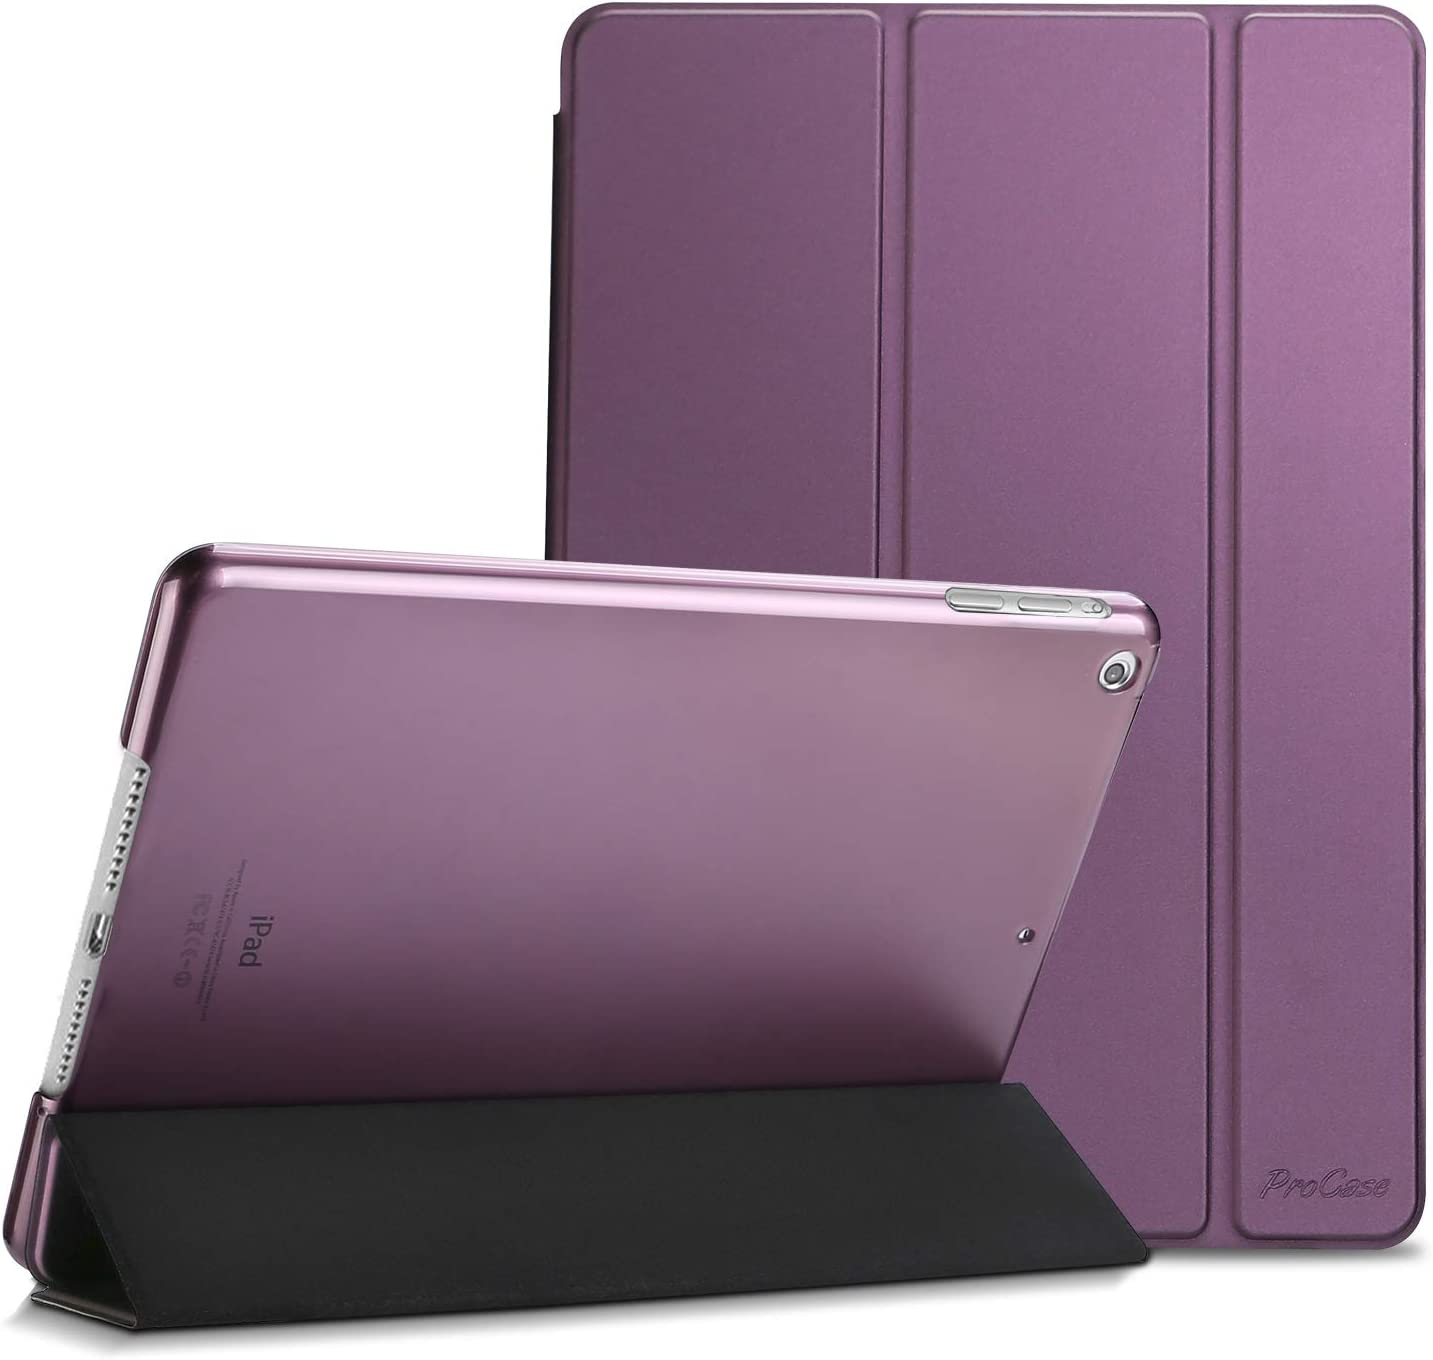 "ProCase iPad Mini 1 2 3 Case(Old Model A1432 A1490 1455), Slim Lightweight Stand Cover with Translucent Frosted Back Smart Case for 7.9"" Apple iPad Mini, Mini 2, Mini 3, with Auto Sleep/Wake –Purple"